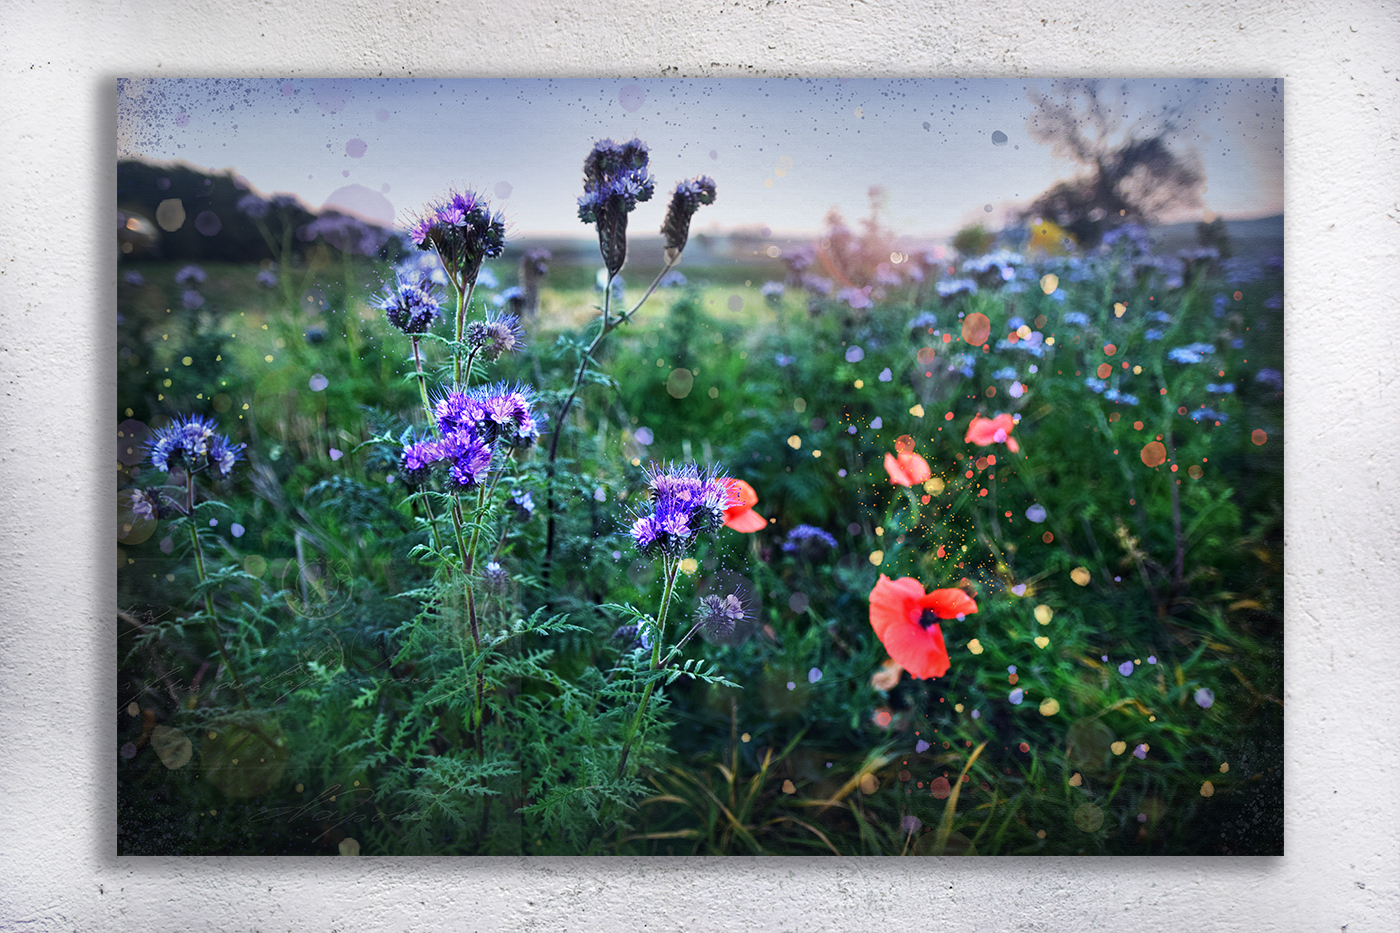 Nature photo, floral photo, summer photo, Wildflowers example image 4